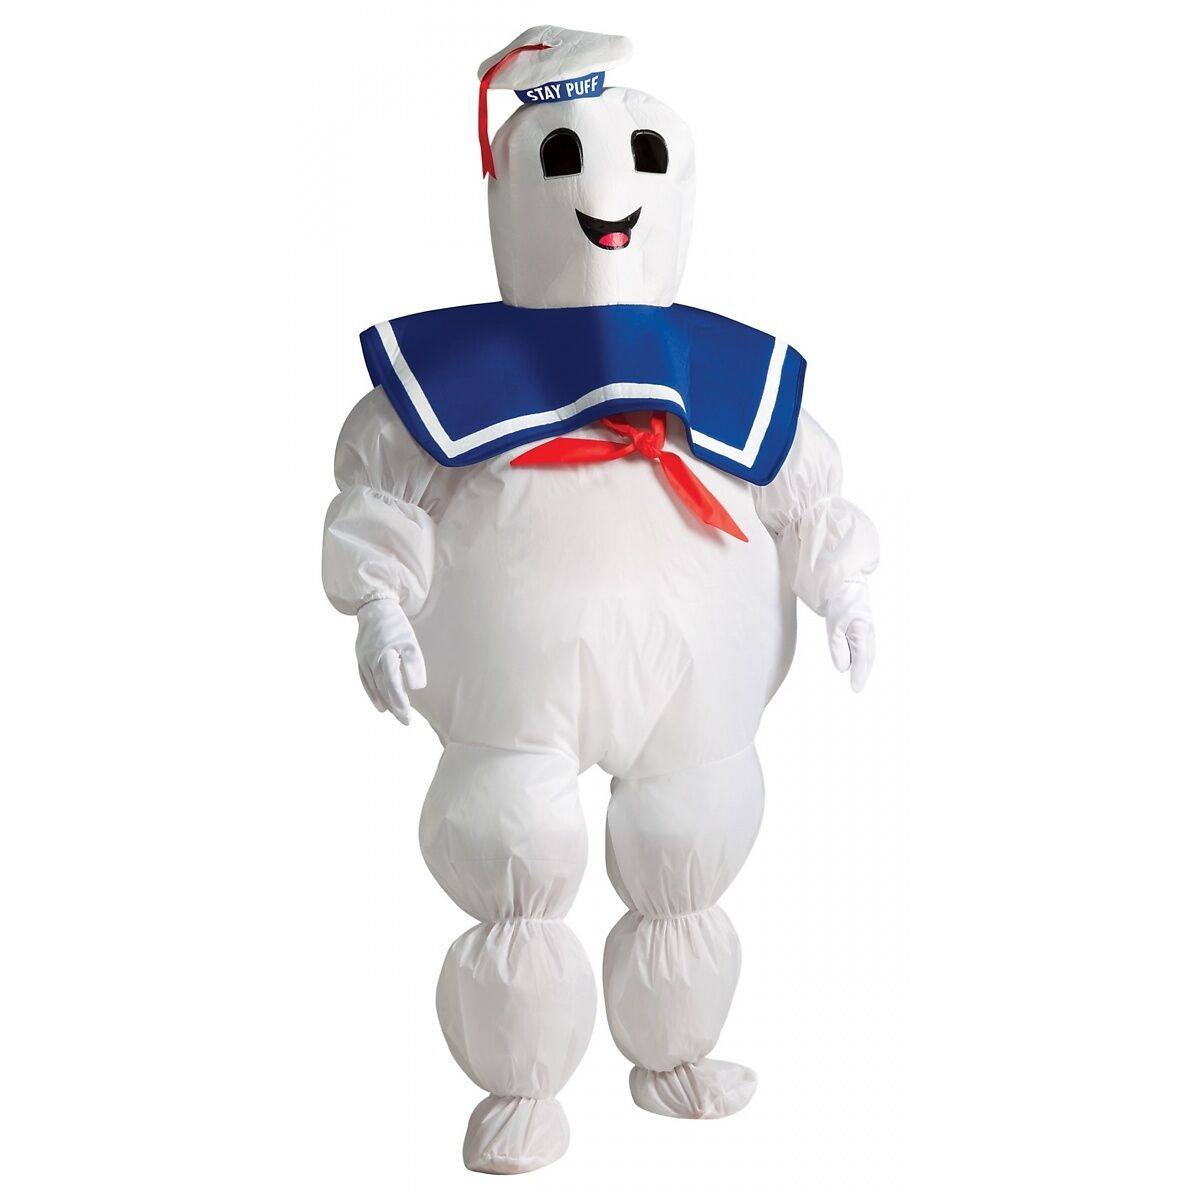 Ghostbusters Stay Puft Marshmallow Man Inflatable Costume Halloween For Kids/Adults (Headpiece, Gloves, Inflatable Jumpsuit with Battery-Operated Fan)